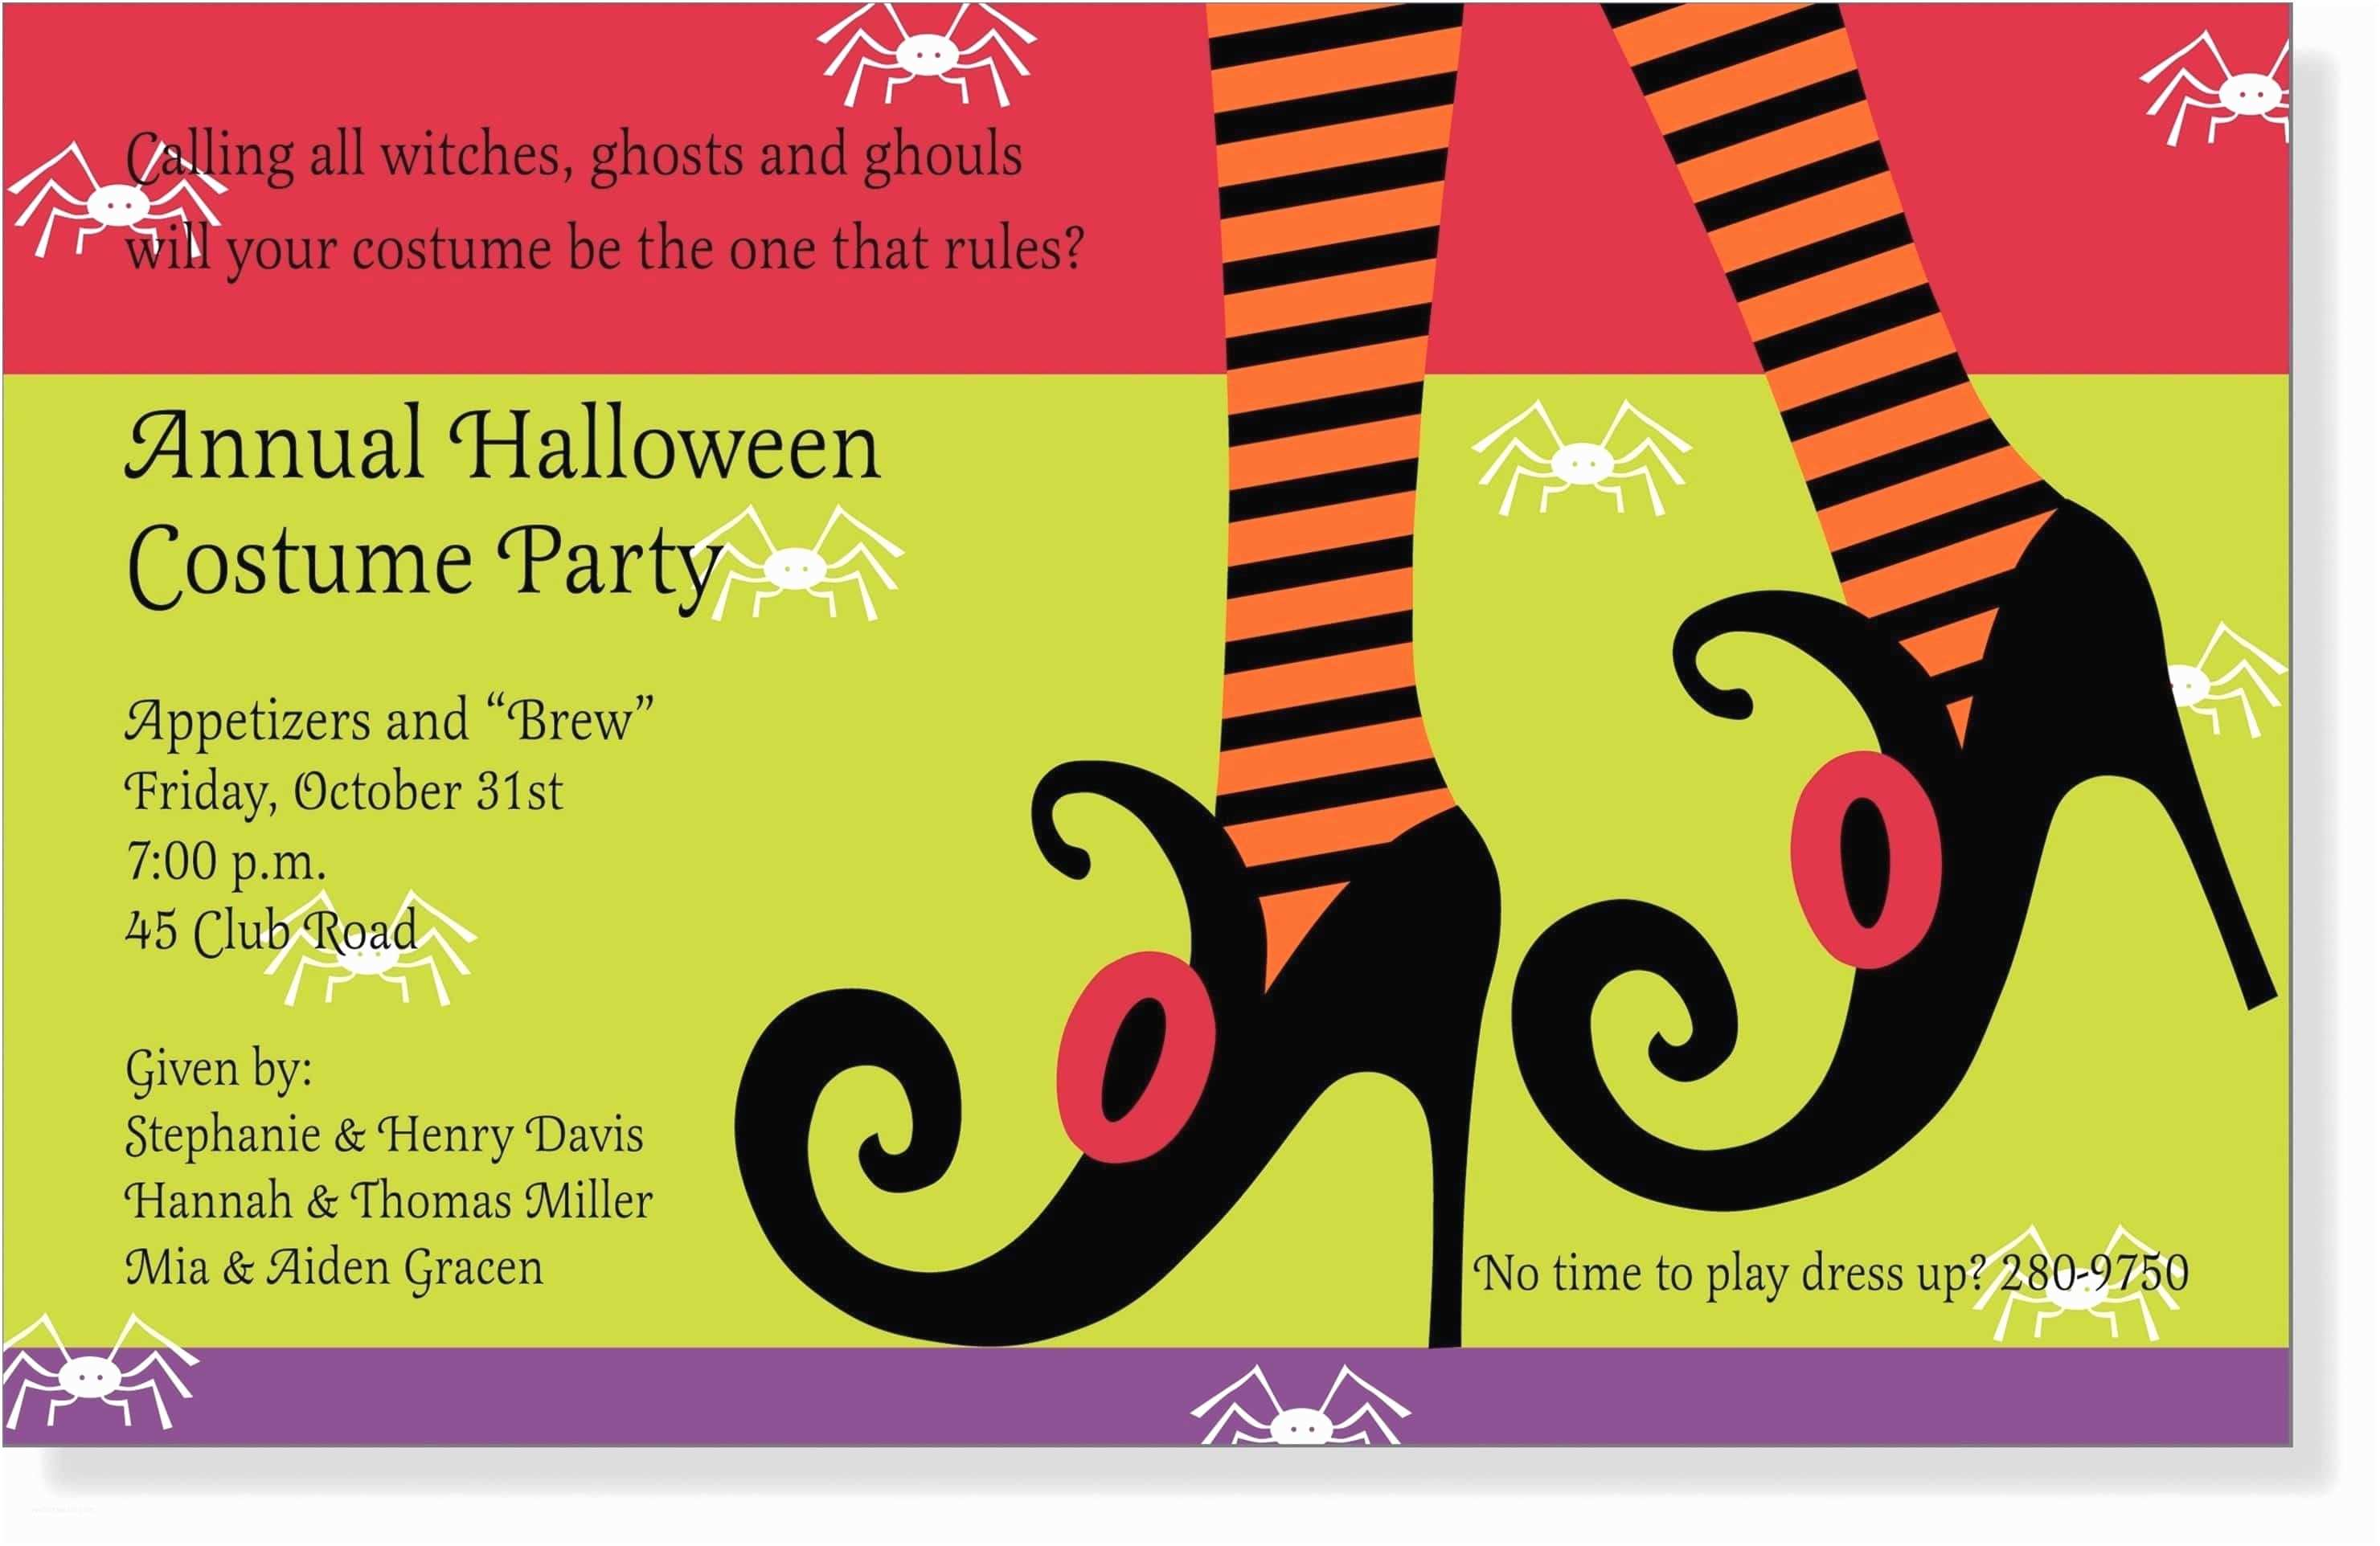 Costume Party Invitation Wording Tips Easy to Create Halloween Party Invitation Wording